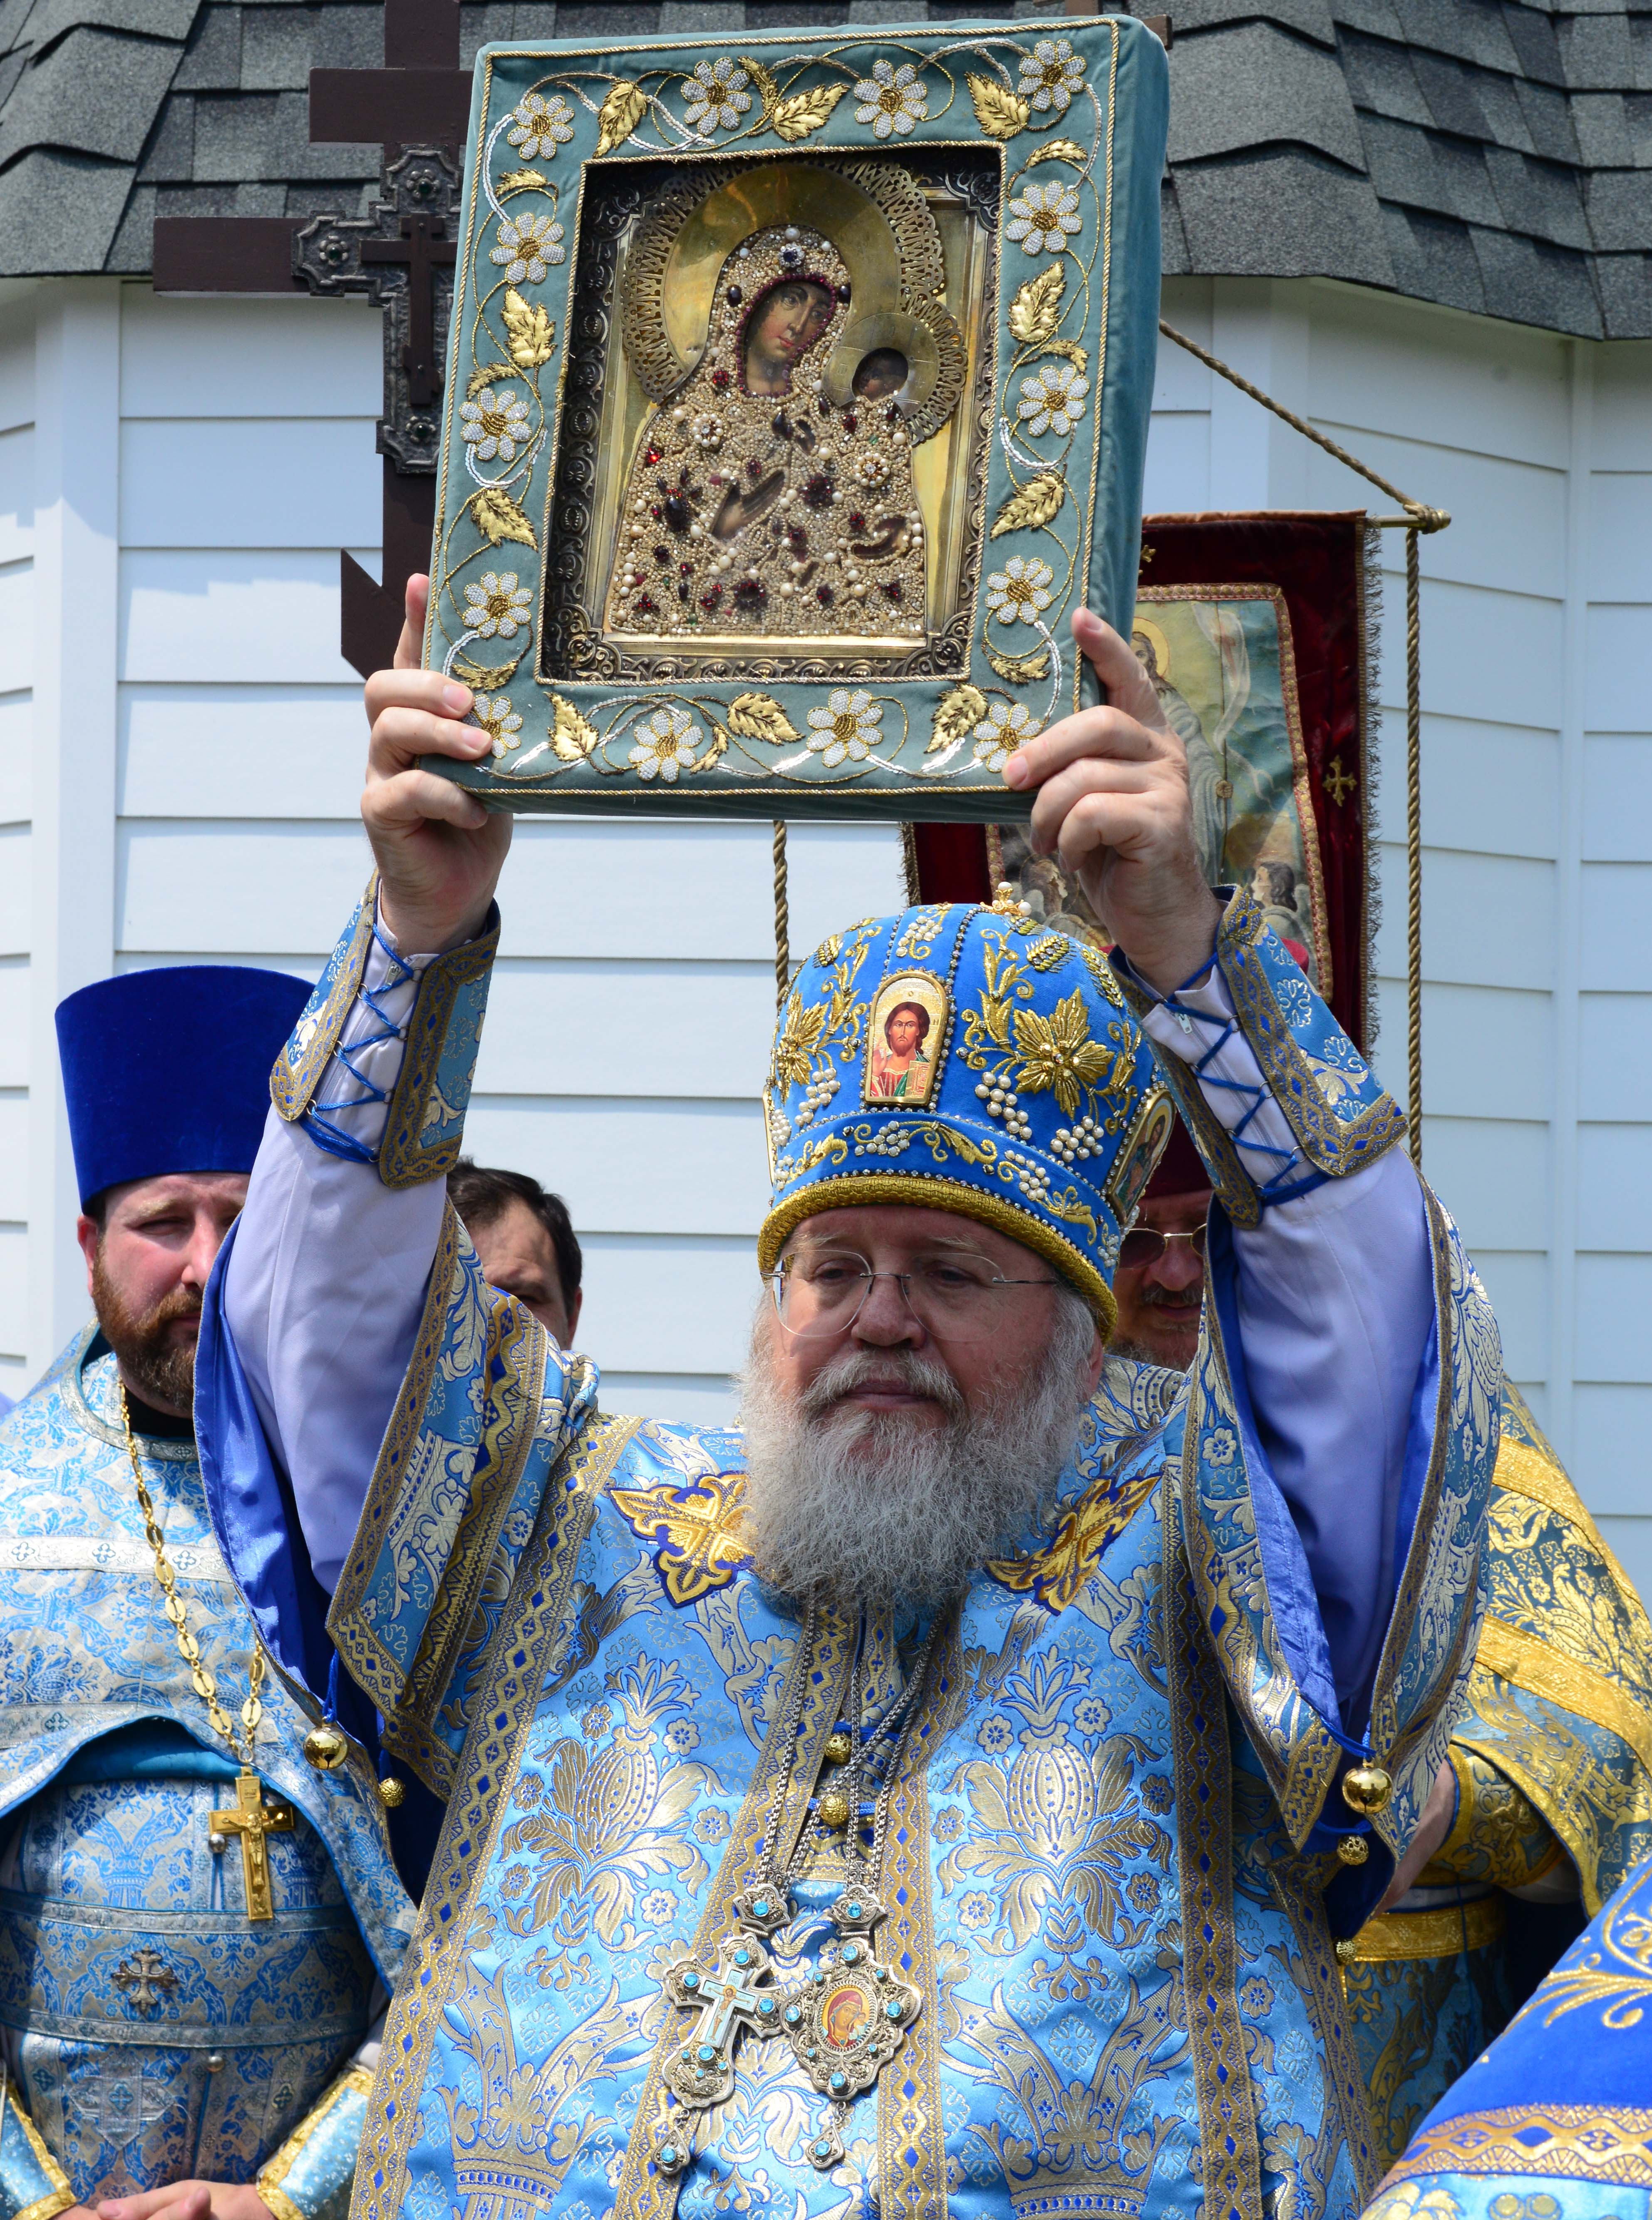 His Eminence Hilarion